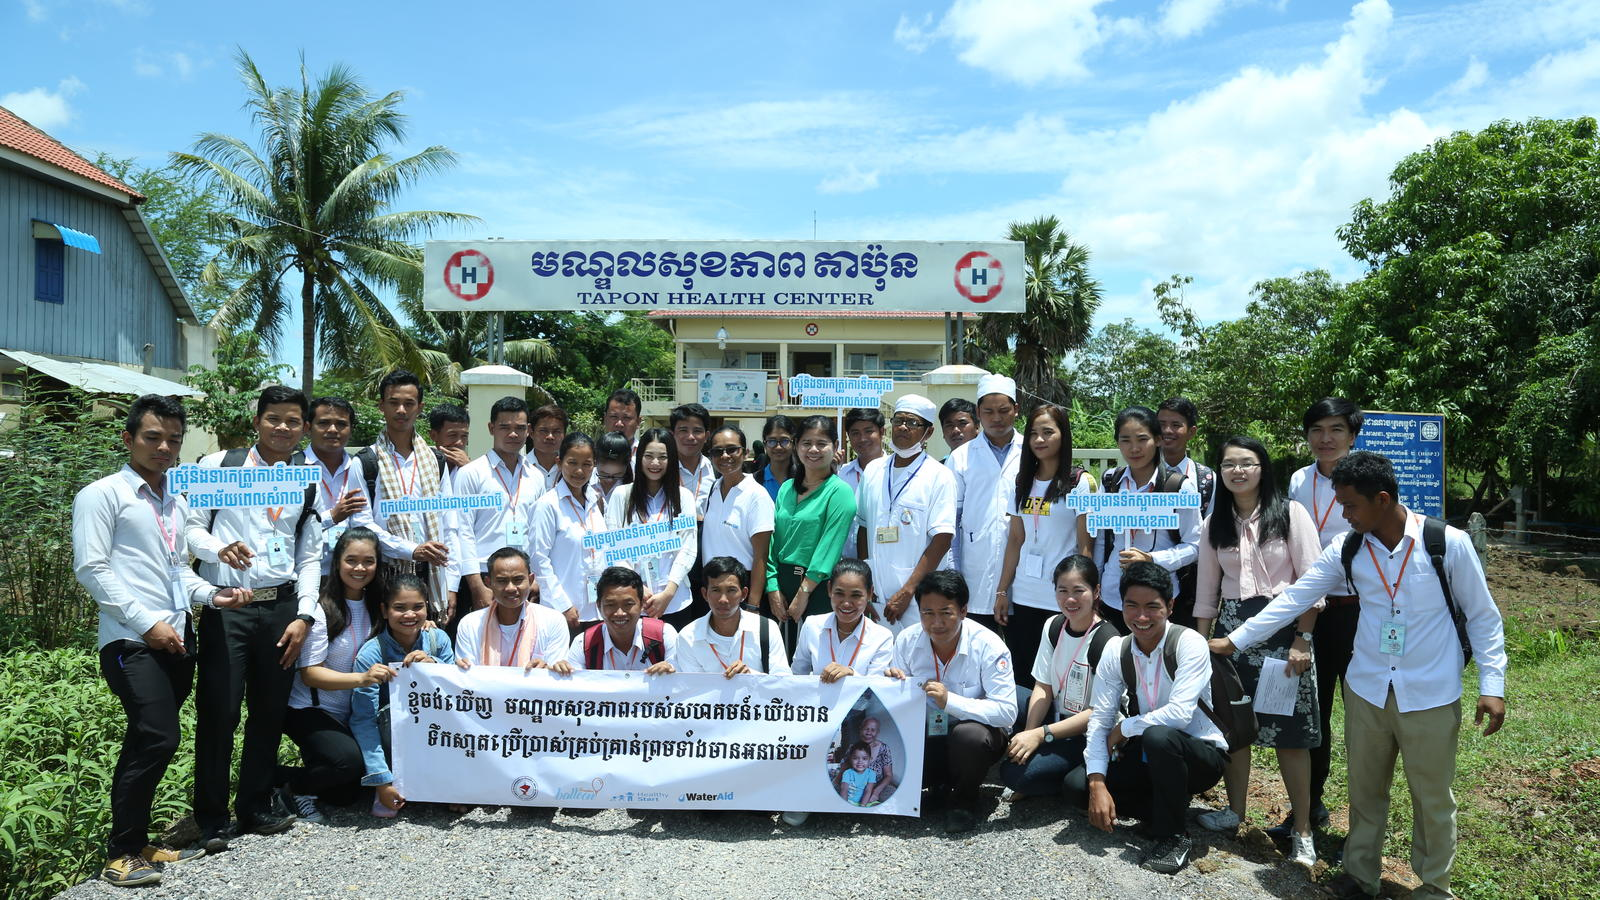 Medical students from Battambang Regional Technical School for Medical Care pose for a picture at their exchange visit to a health centre.